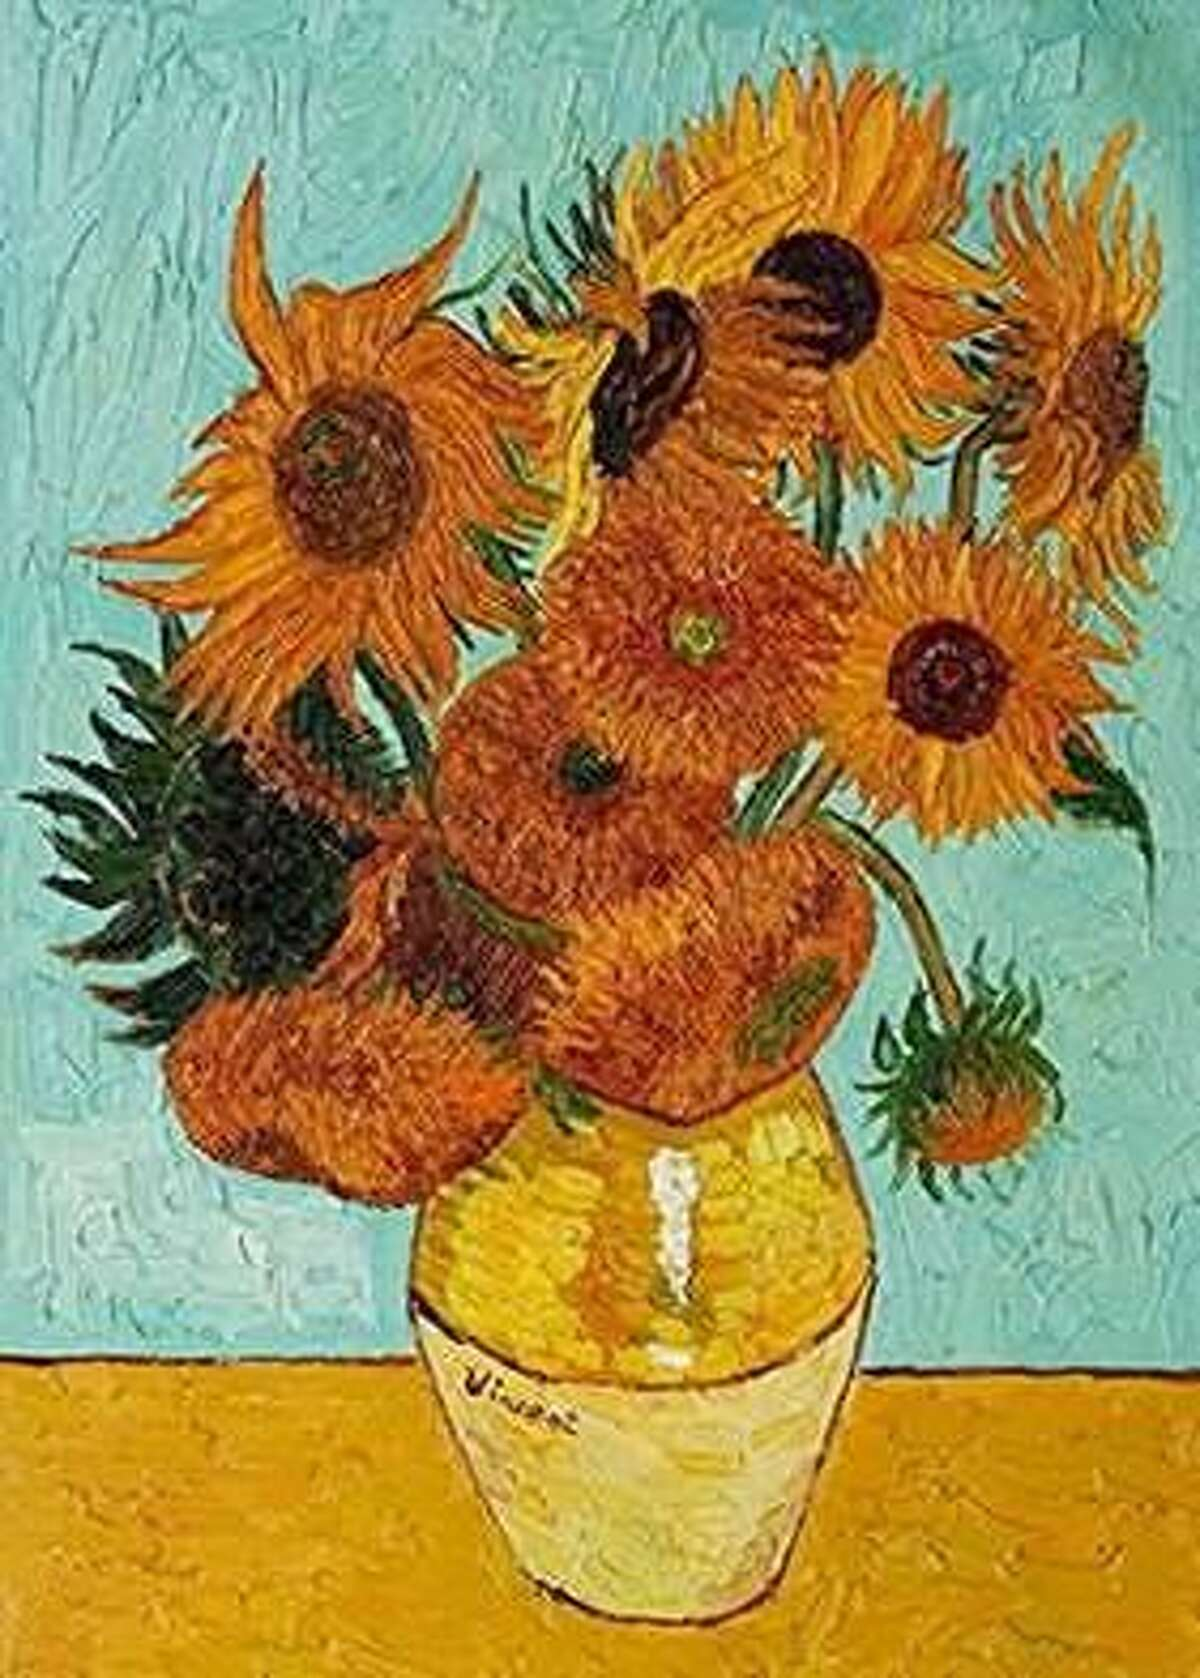 Sip and Paint Van Gogh Sunflowers Ladies Night Out is on March 12 at 7 p.m. at the Darien Arts Center, Visual Arts Studio, 2 Renshaw Road, Darien. Tickets are $45. For more information, visit darienarts.org.